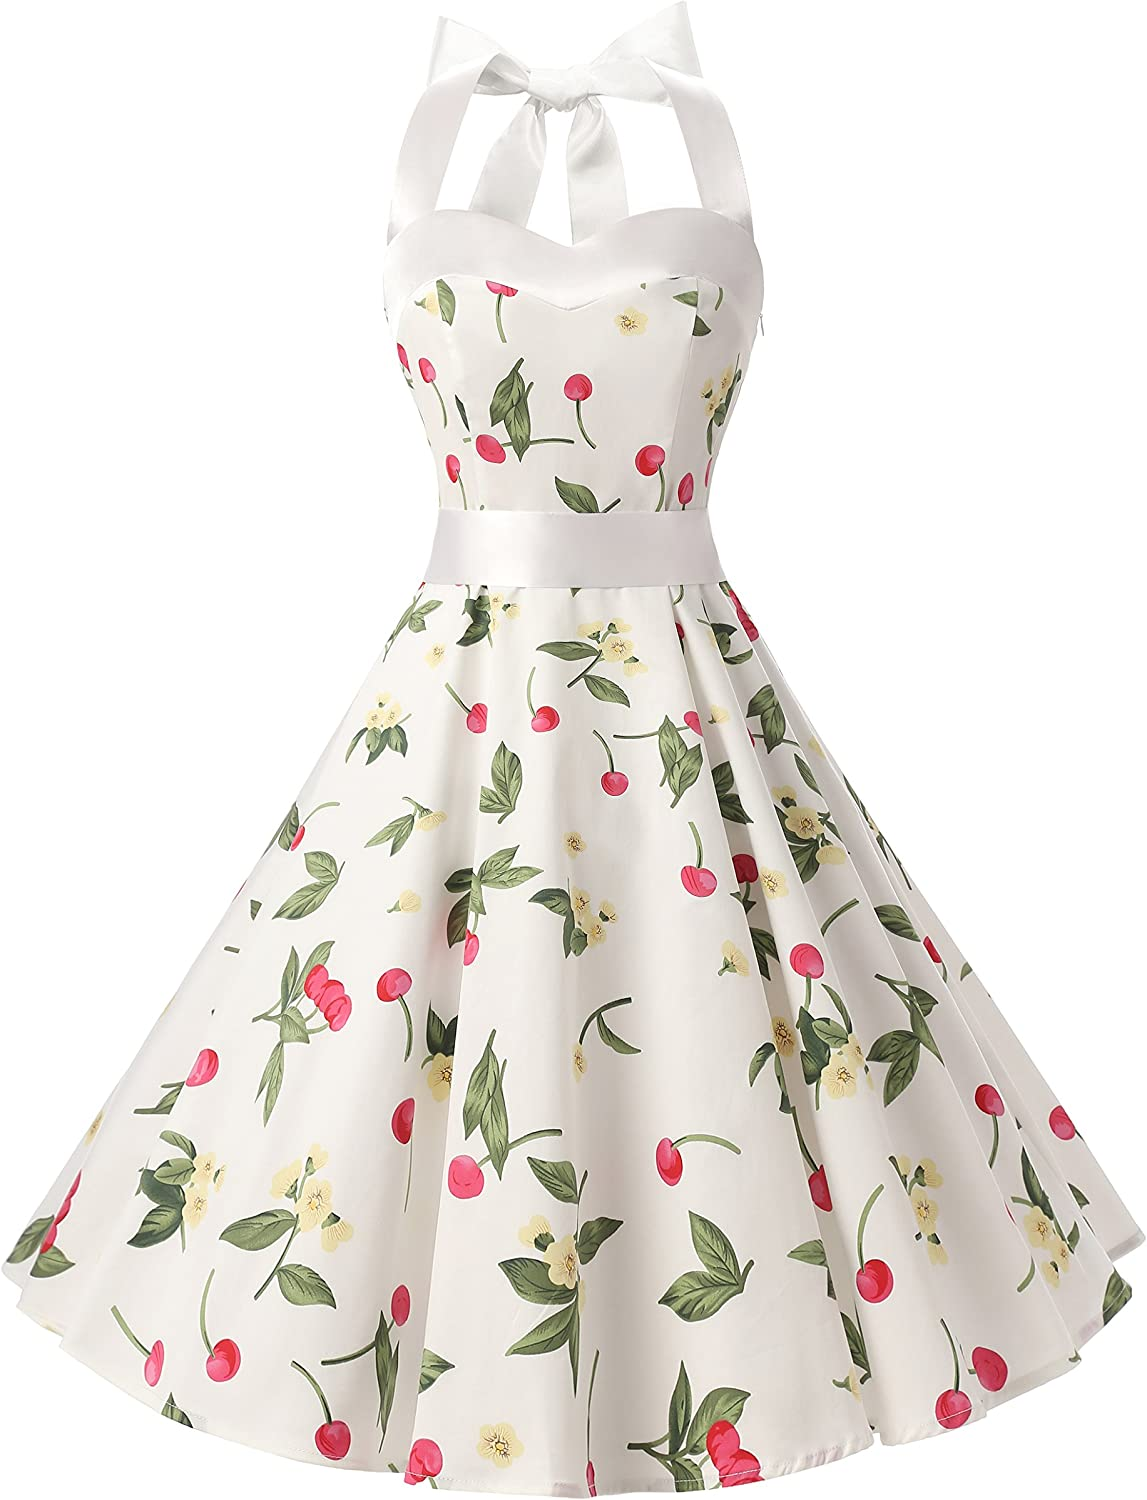 TALLA 3XL. Dresstells® Halter 50s Rockabilly Polka Dots Audrey Dress Retro Cocktail Dress White Small Cherry 3XL